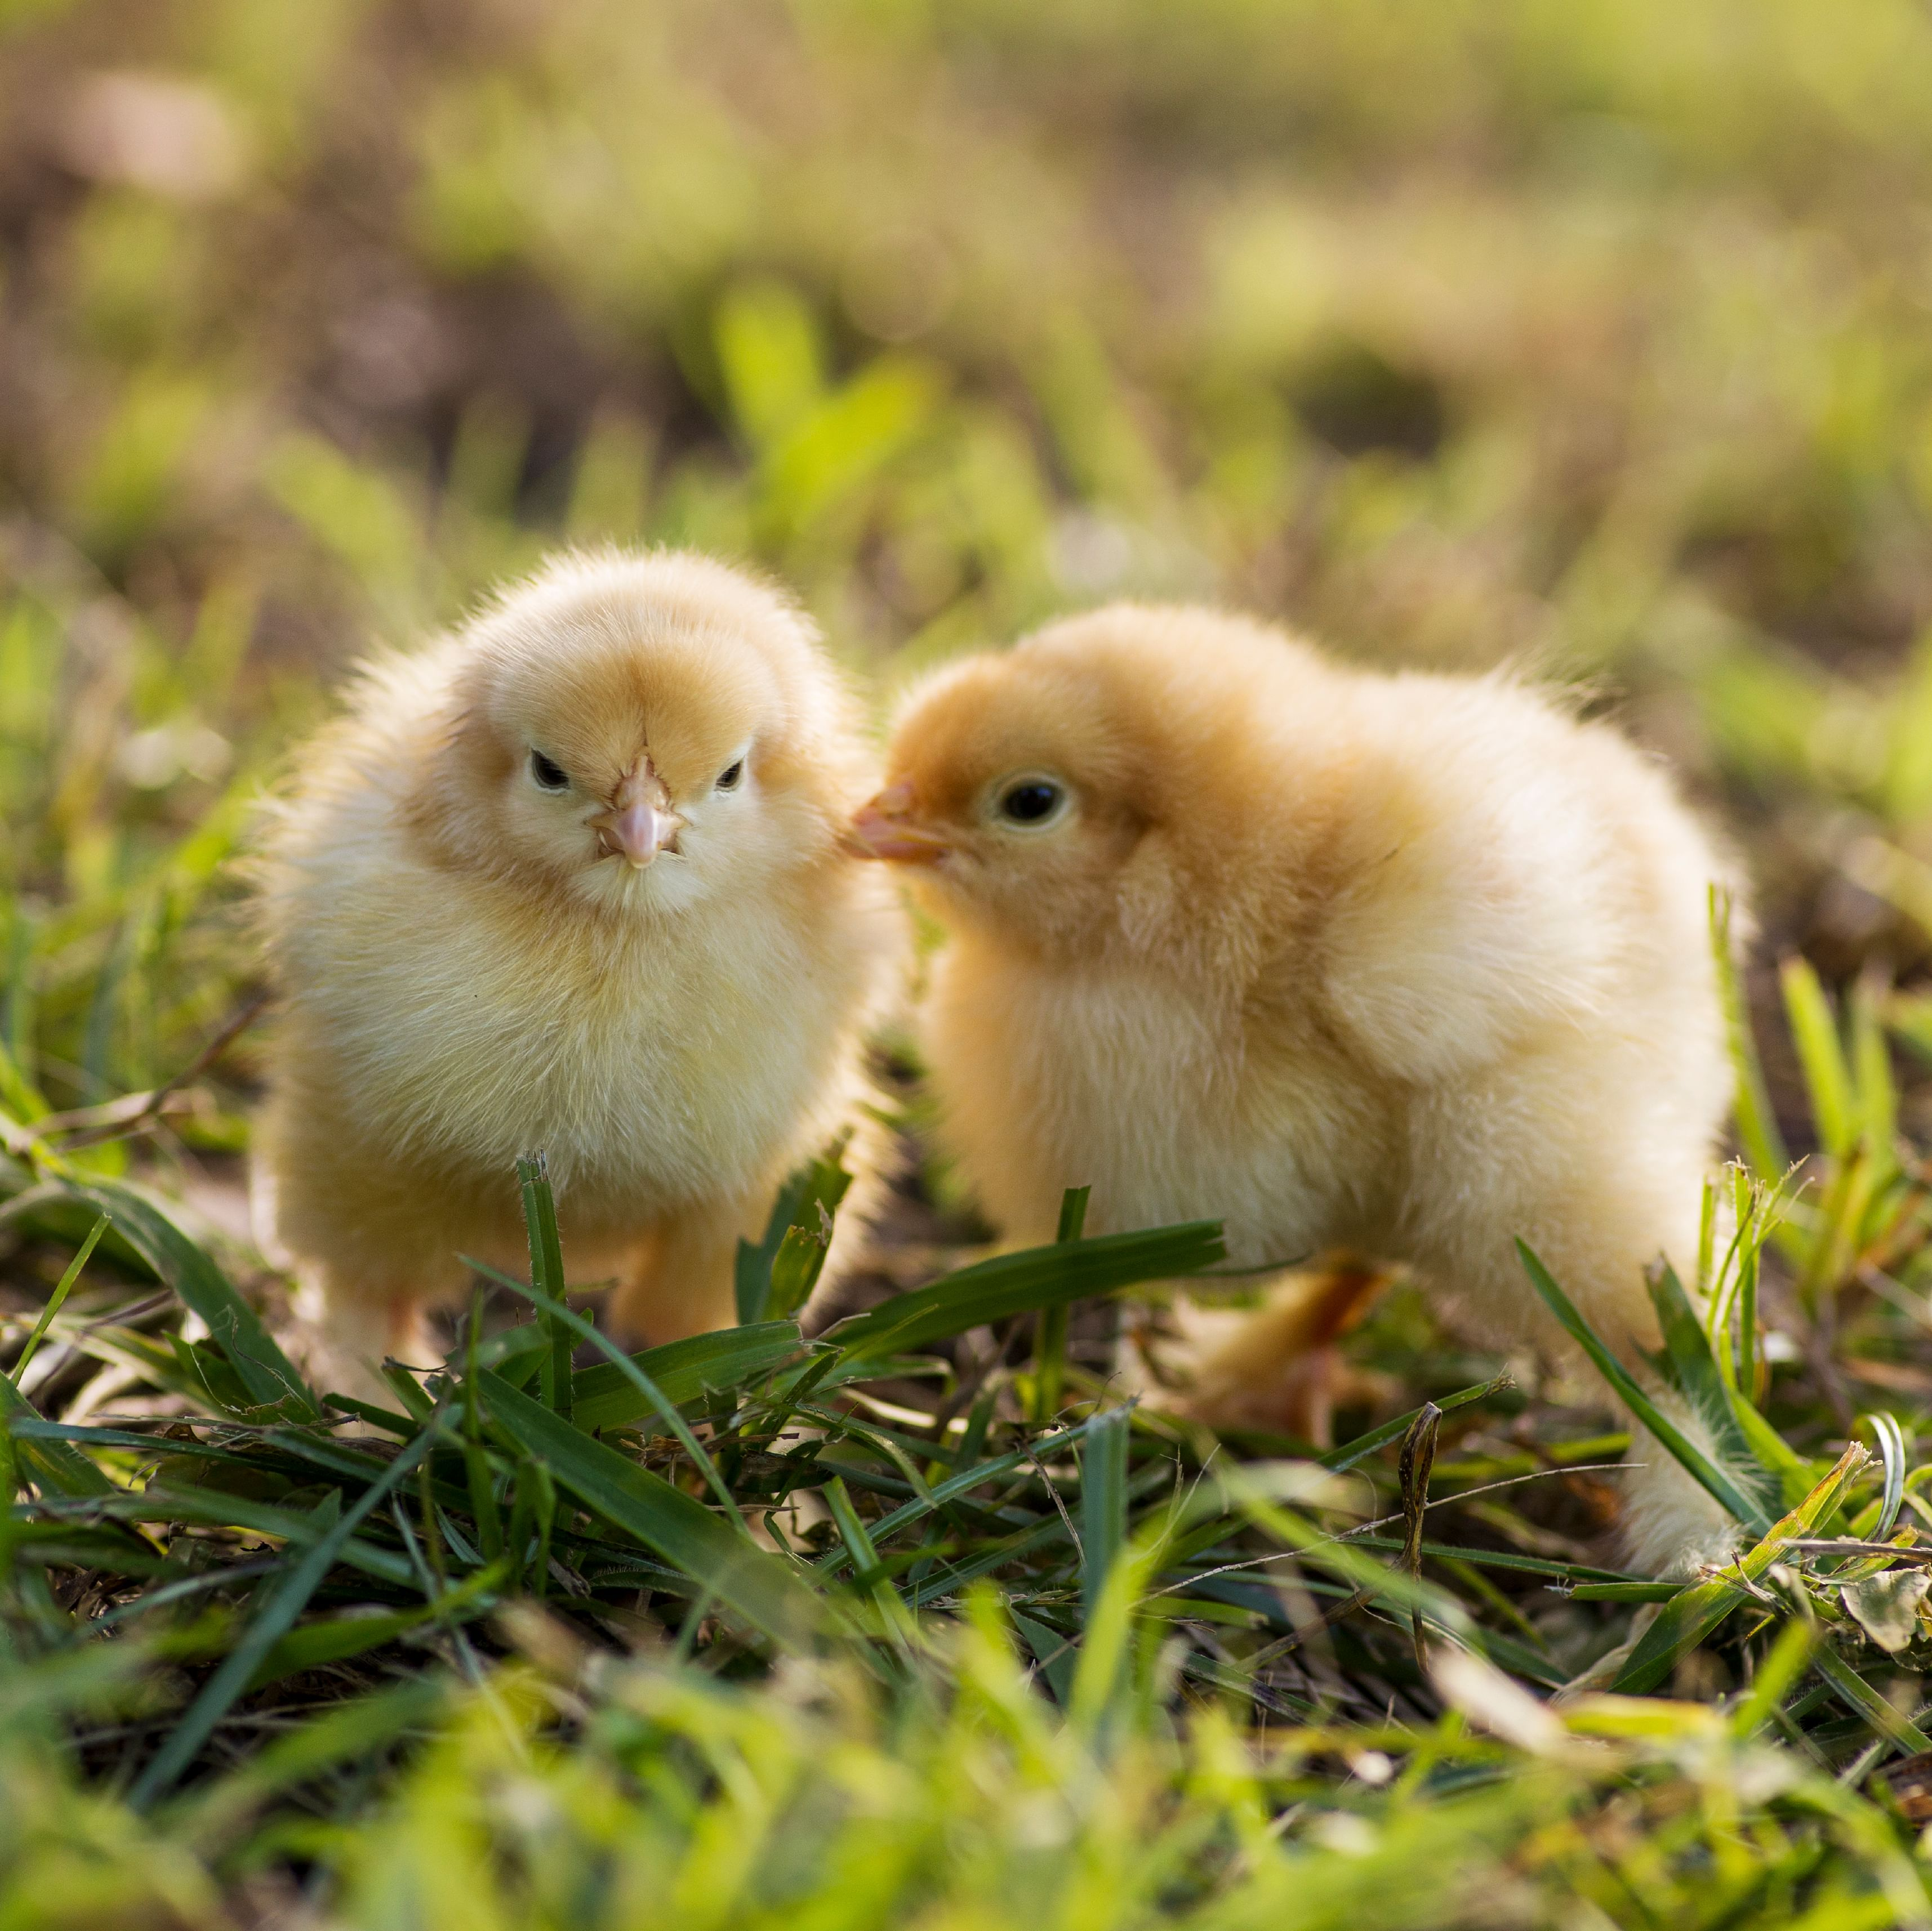 why we need to treat hens and chickens with respect and concern